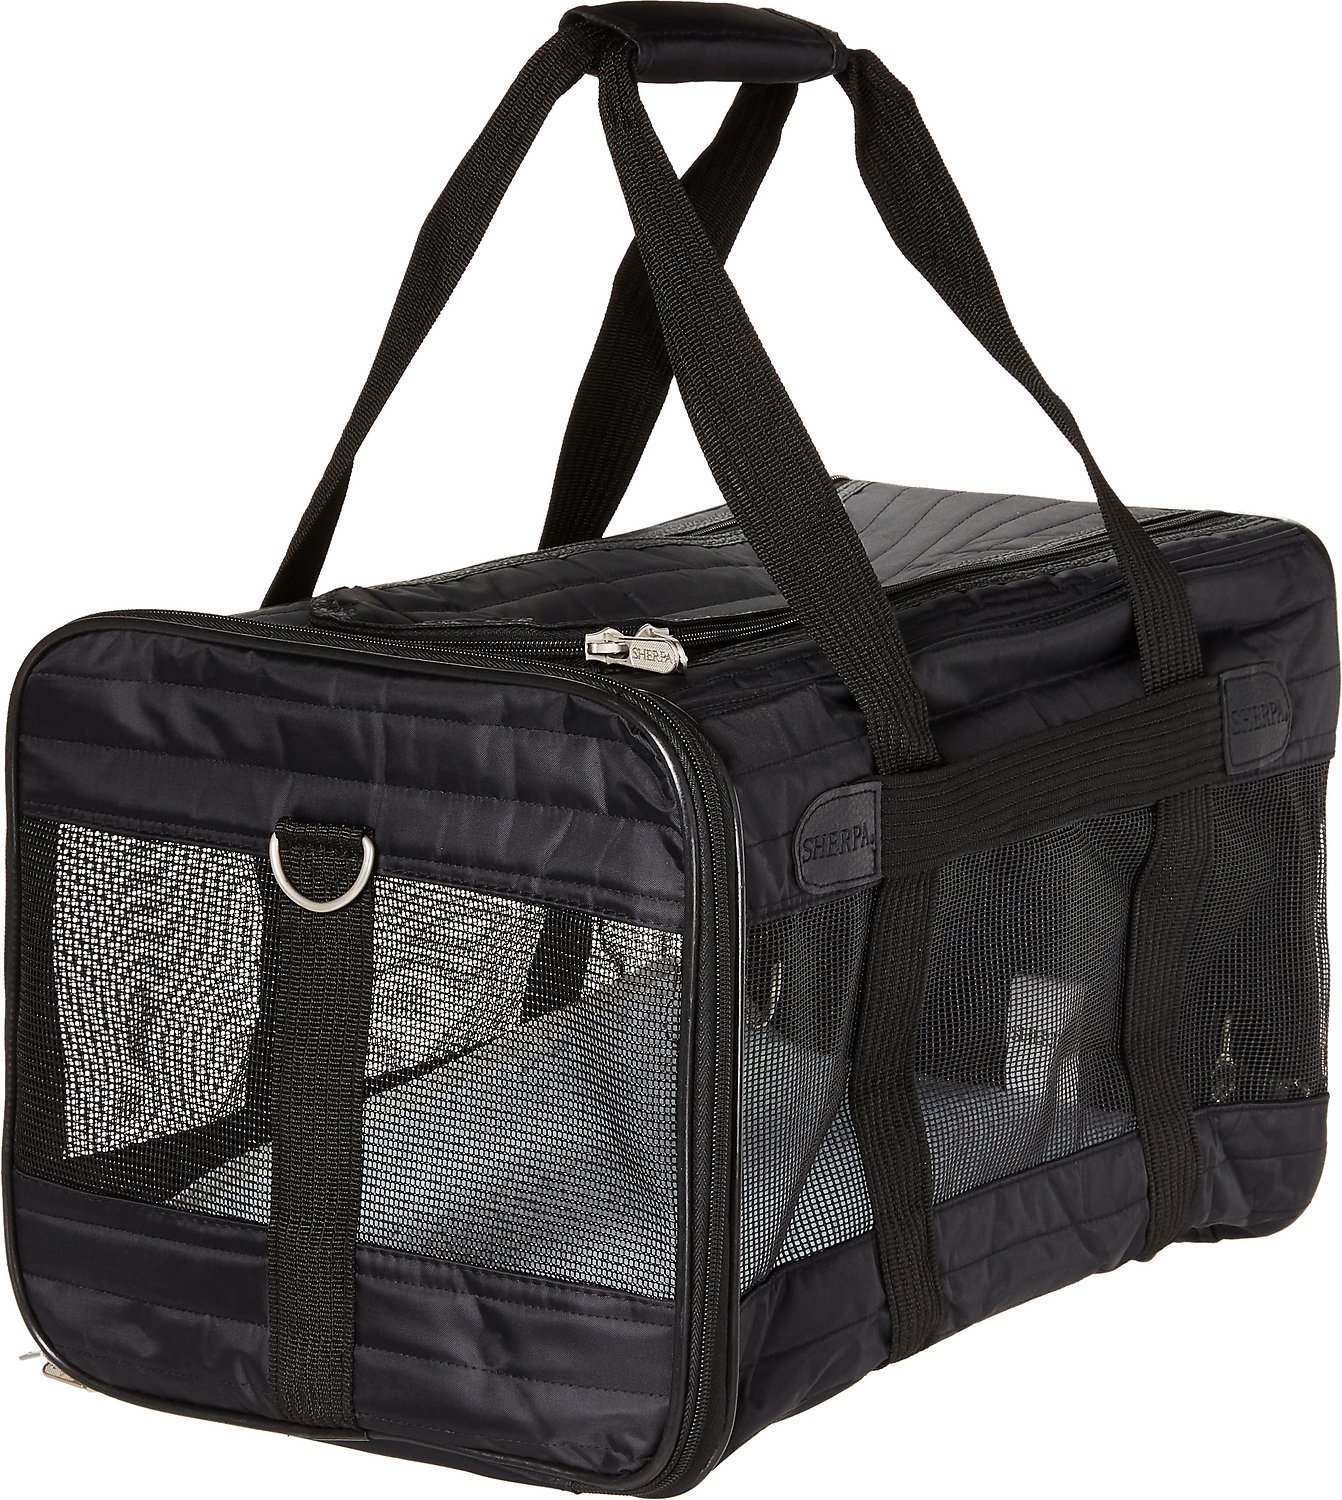 Sherpa Original Deluxe Pet Carrier Image